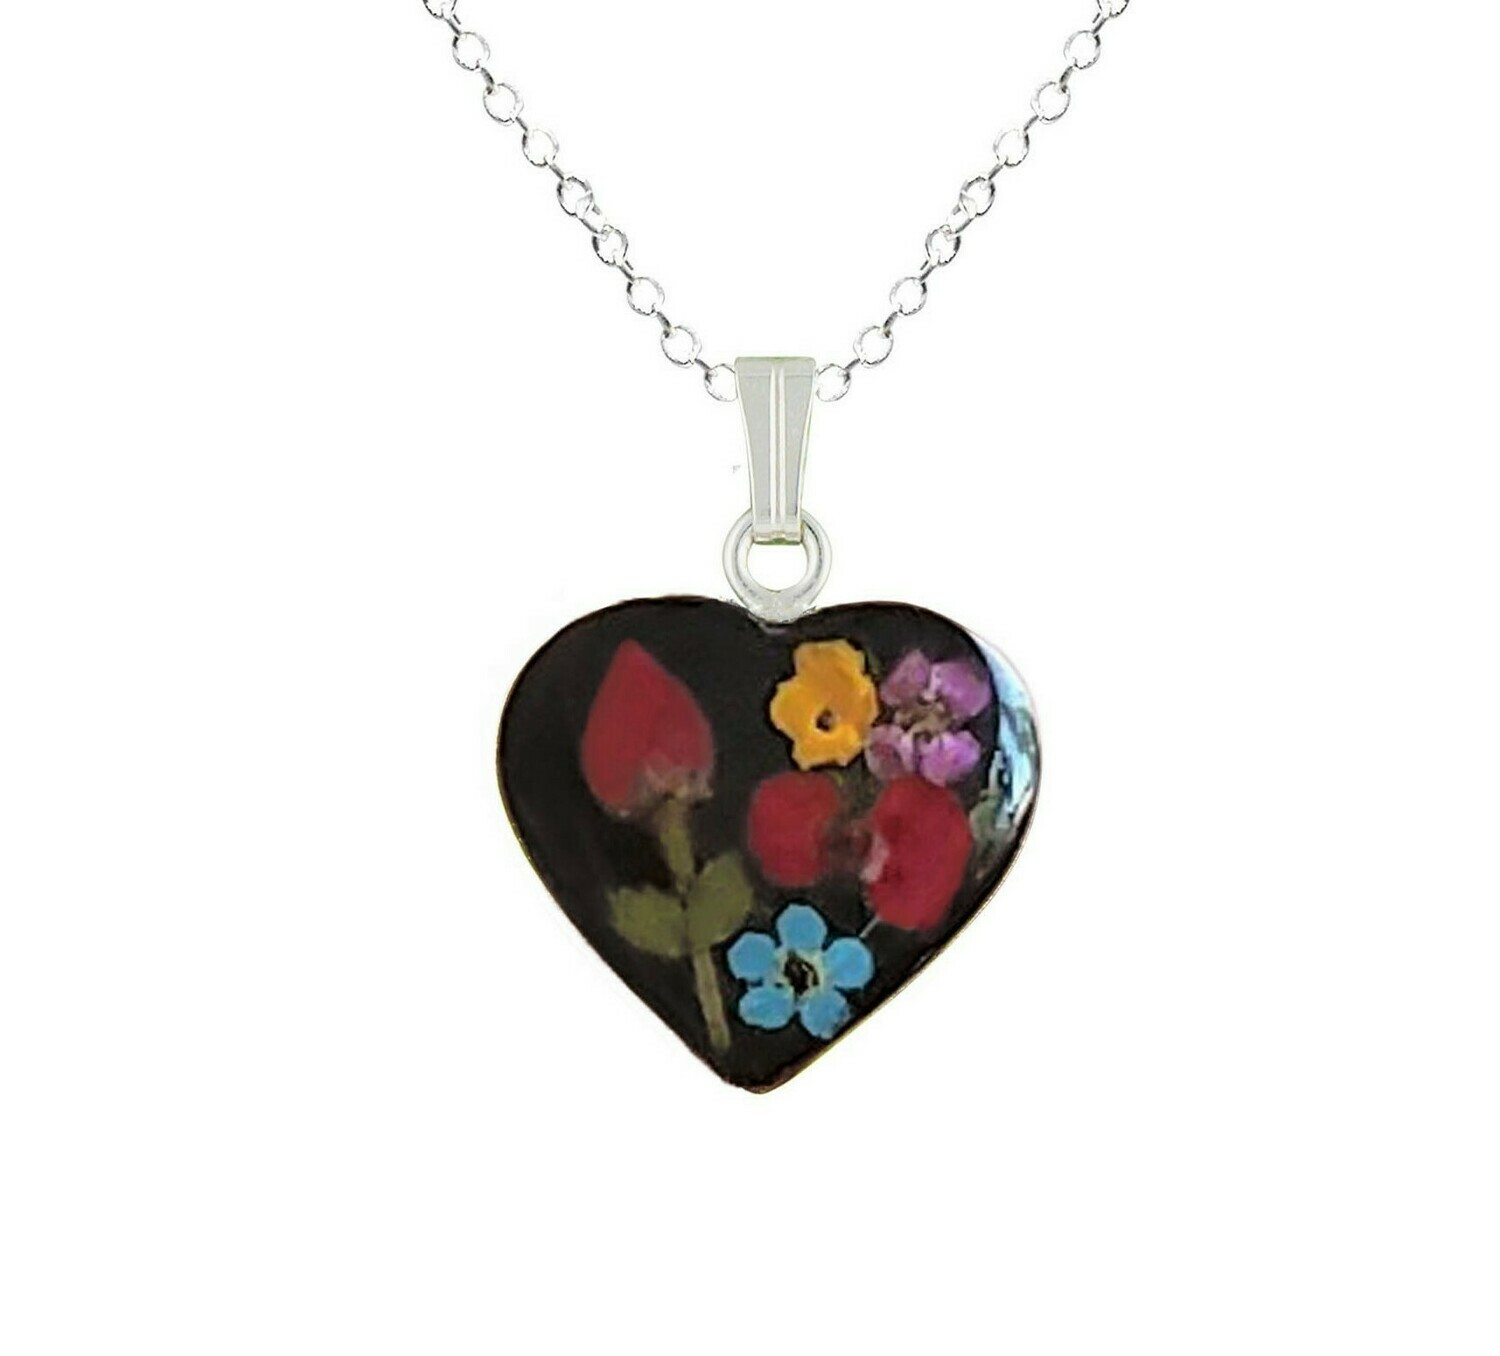 Rose & Mix Flowers Necklace, Medium Heart, Black Background